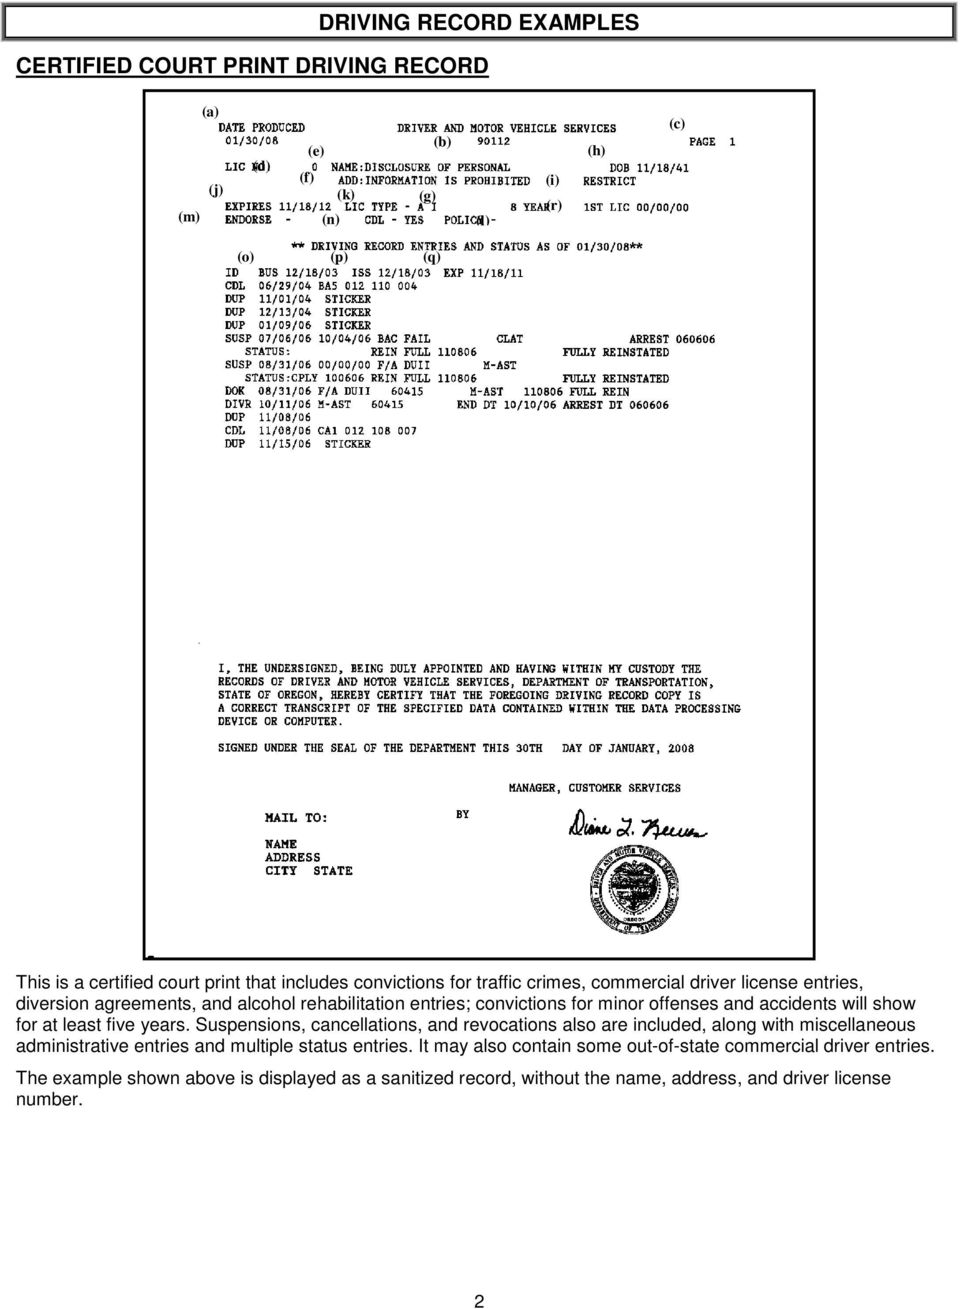 Motor vehicle driving record vehicle ideas for Driver license motor vehicle record